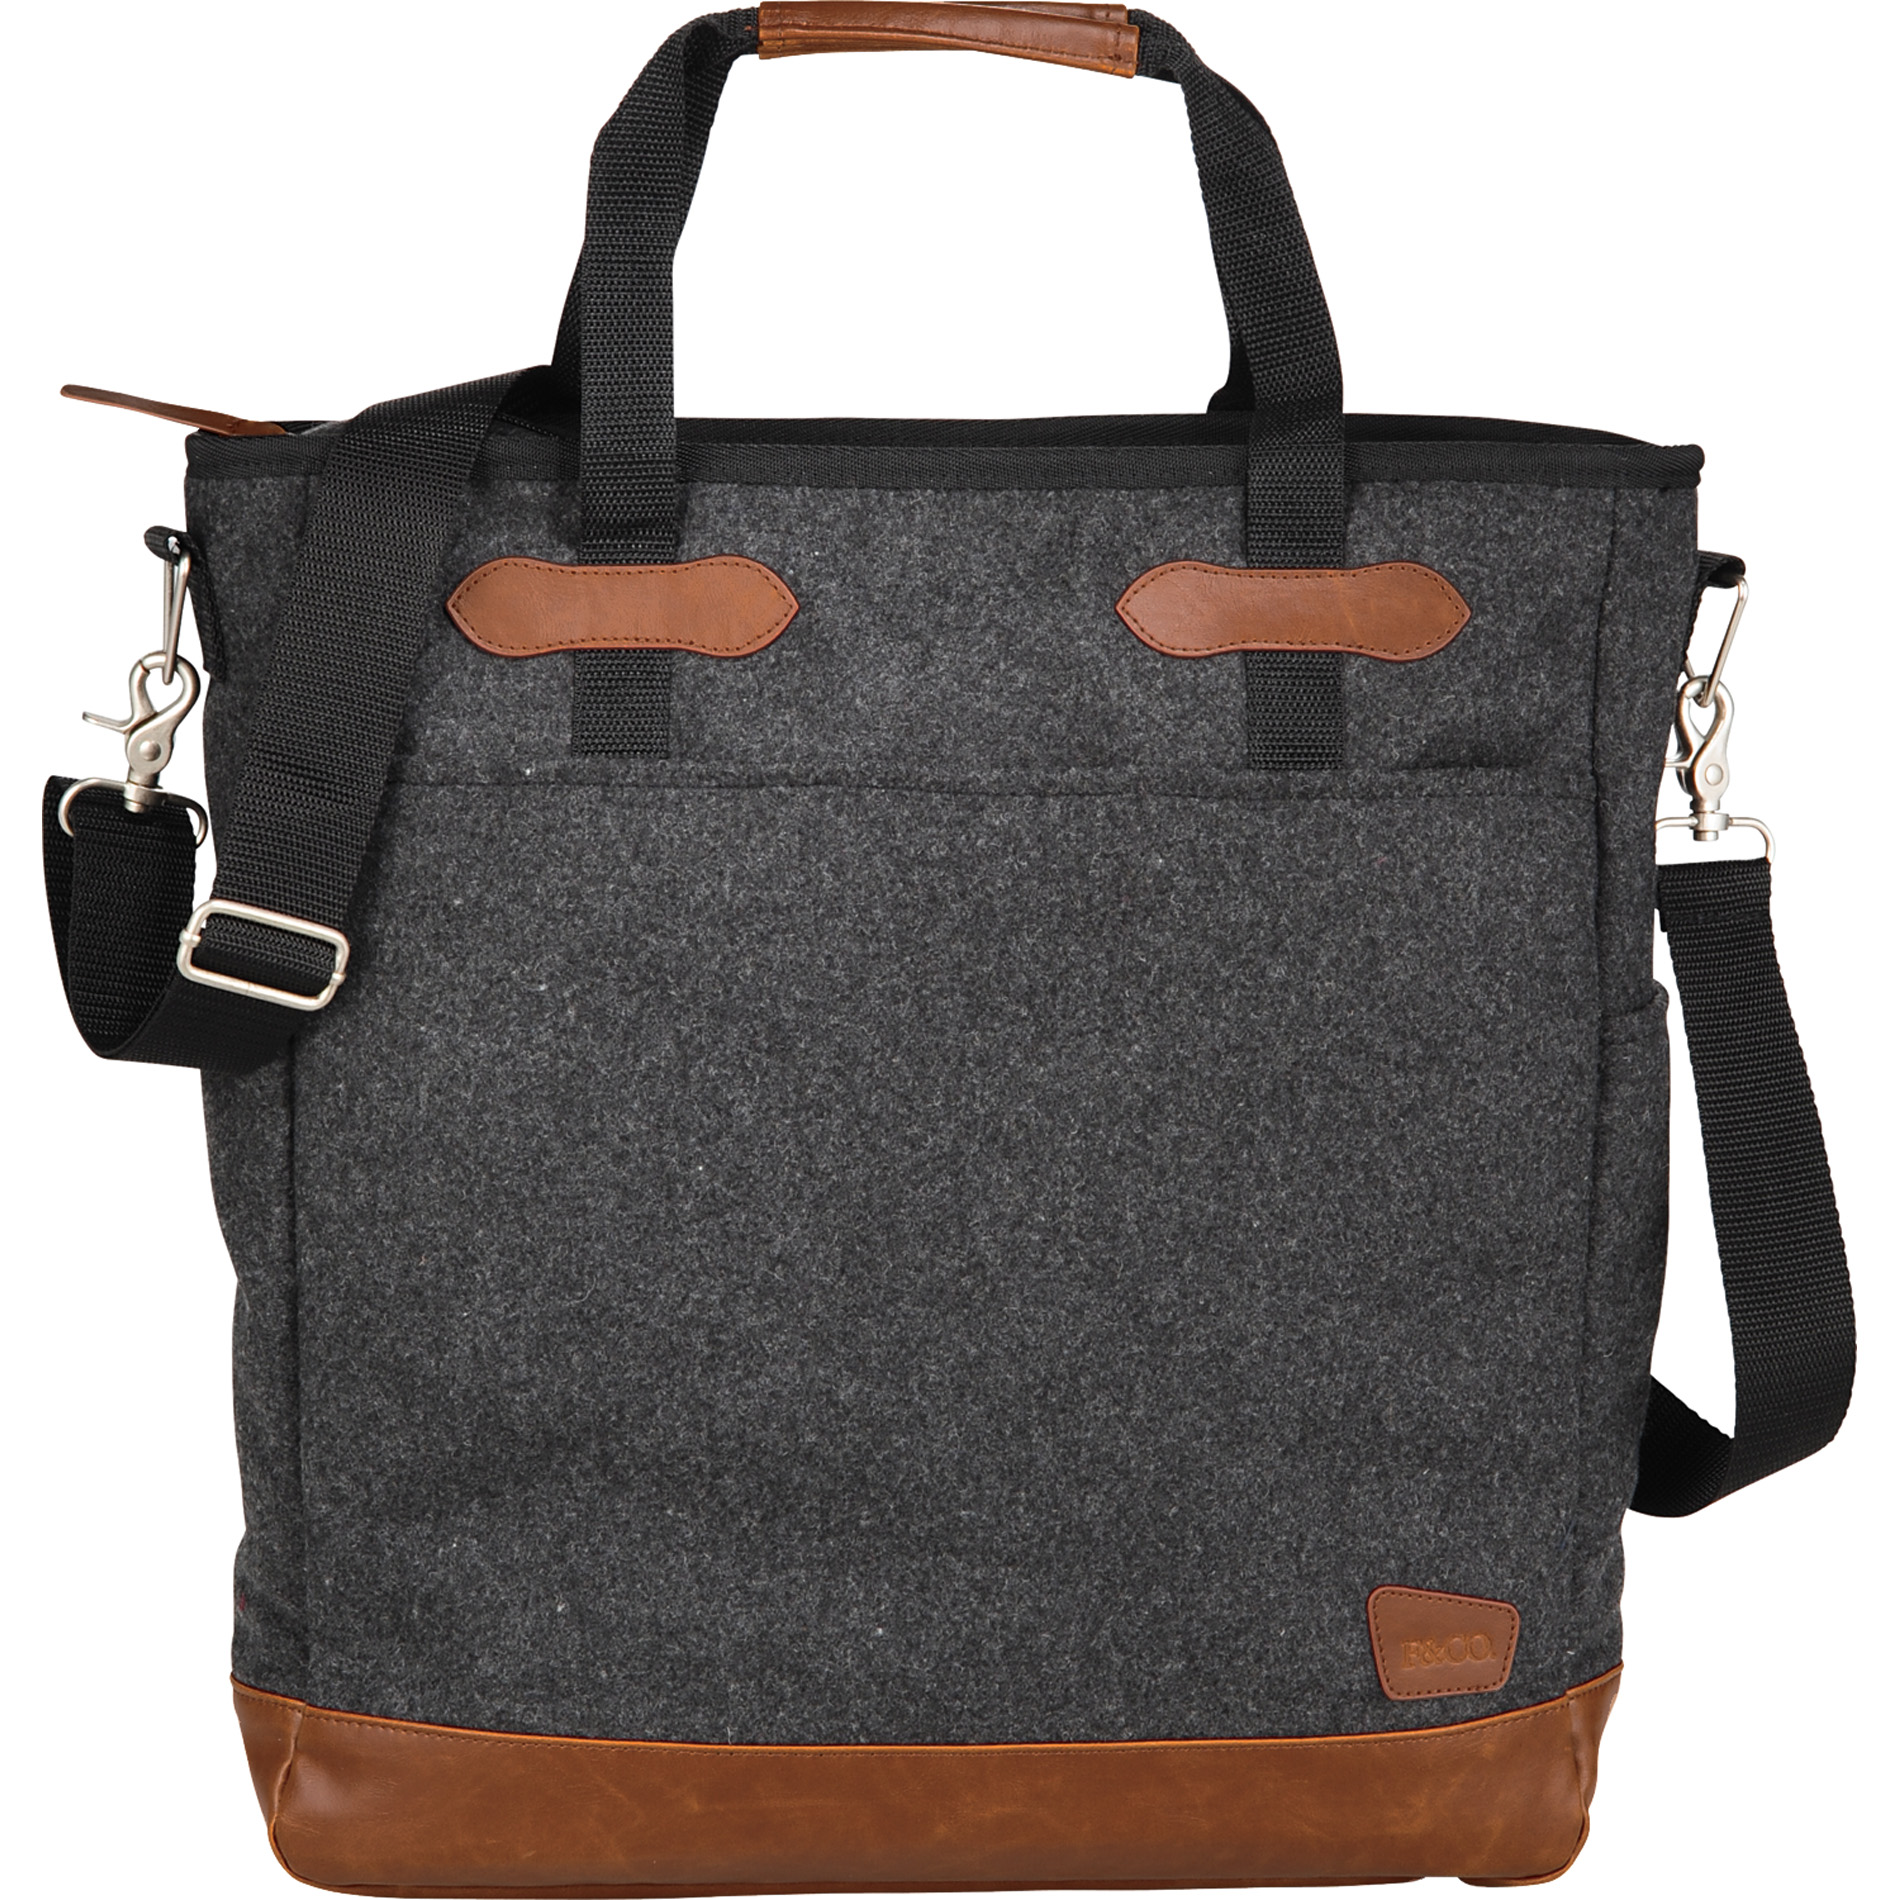 "Field & Co.® 7950-86 - Campster Wool 15"" Computer Tote"